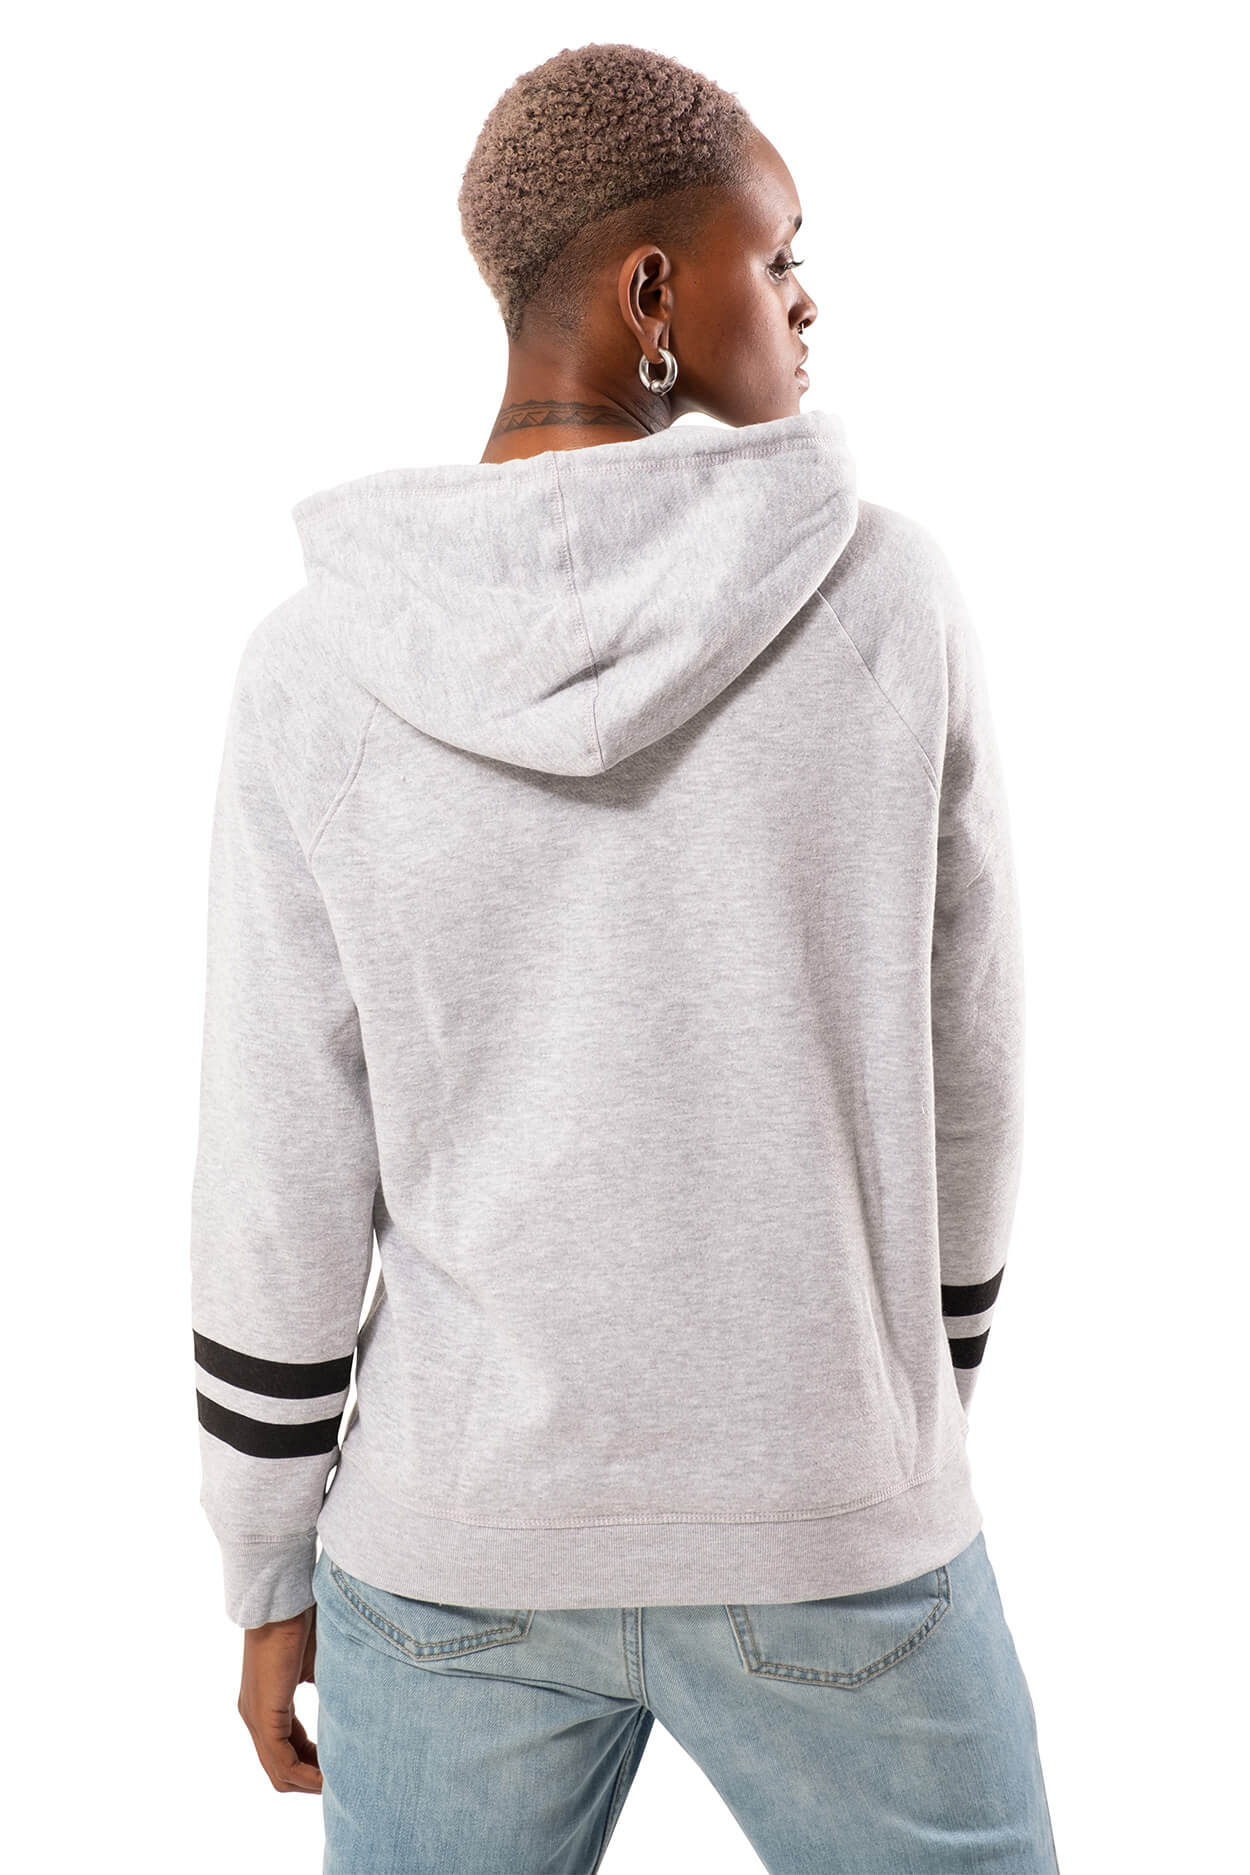 NBA Brooklyn Nets Women's Hoodie Varsity Stripe|Brooklyn Nets